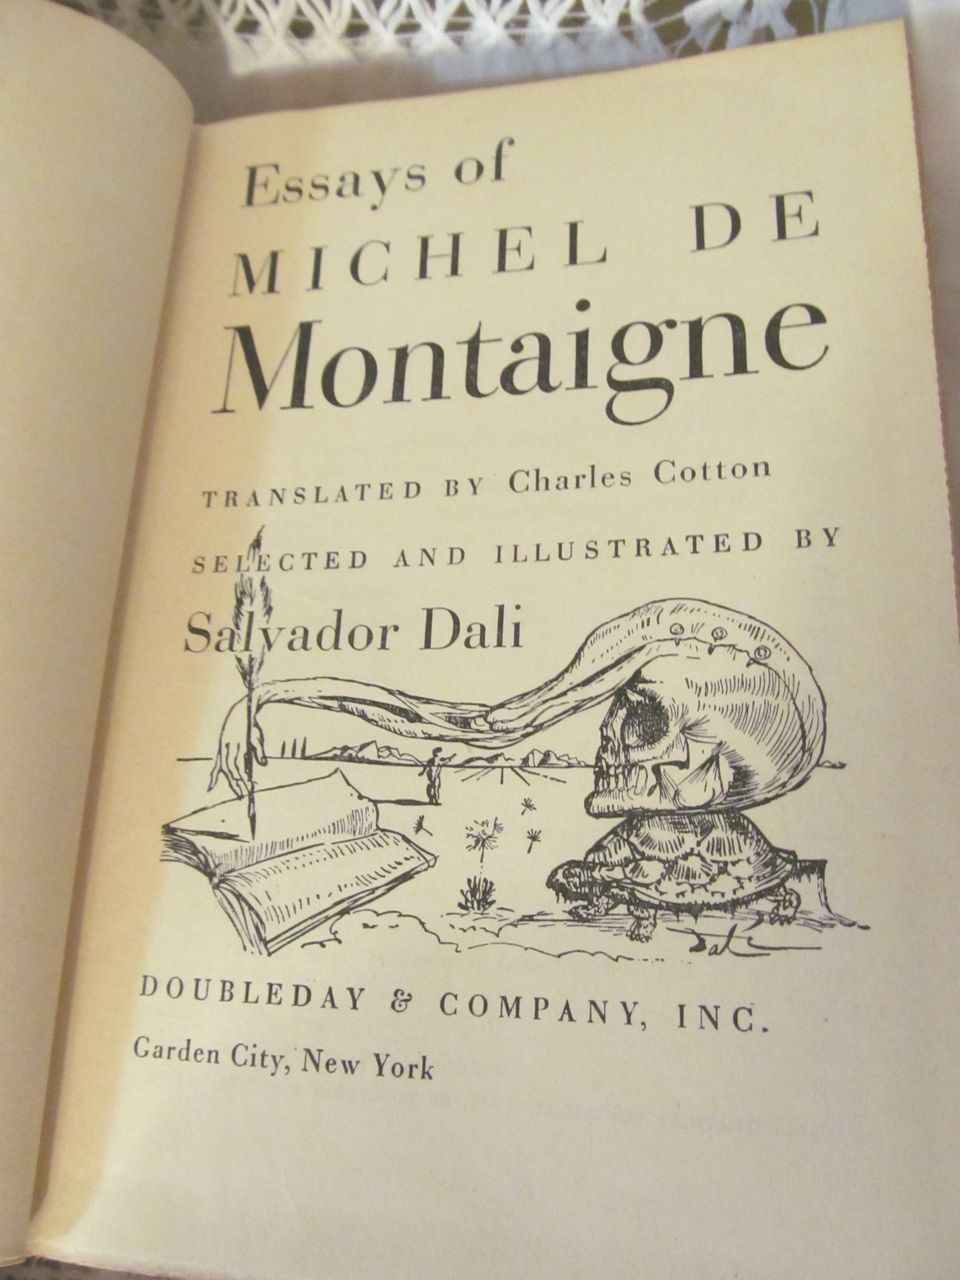 montaigne s essays essay Venuto cellini, the essays of  michel de montaigne present us with an intro- spective study of a renaissance   it is true, of course, that montaigne did not remain in retirement—he later served  two.